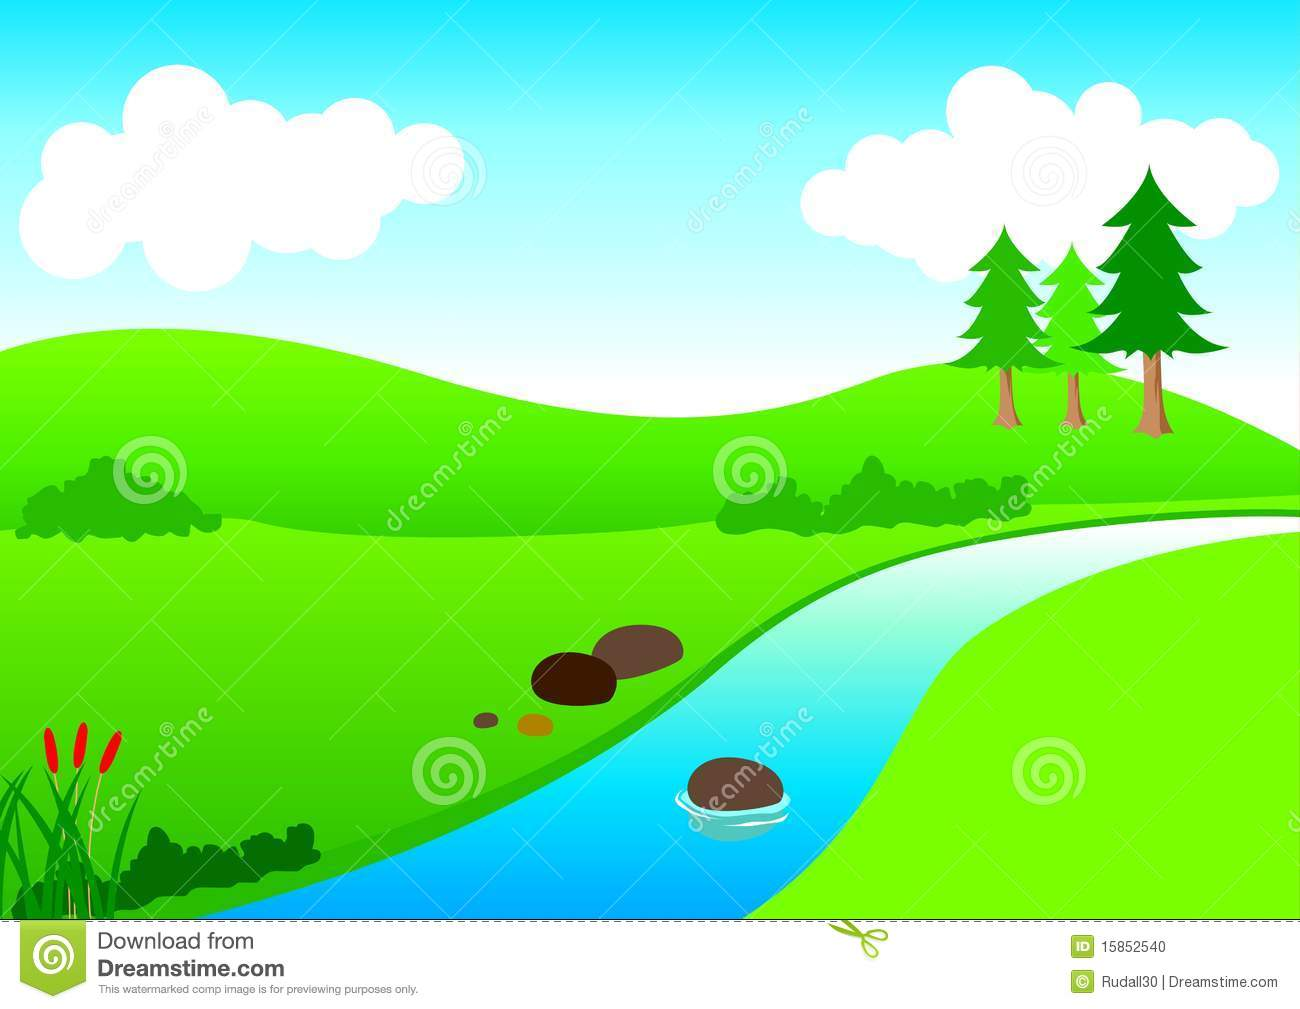 River background clipart png freeuse stock River Cartoon Clipart - Clipart Kid png freeuse stock